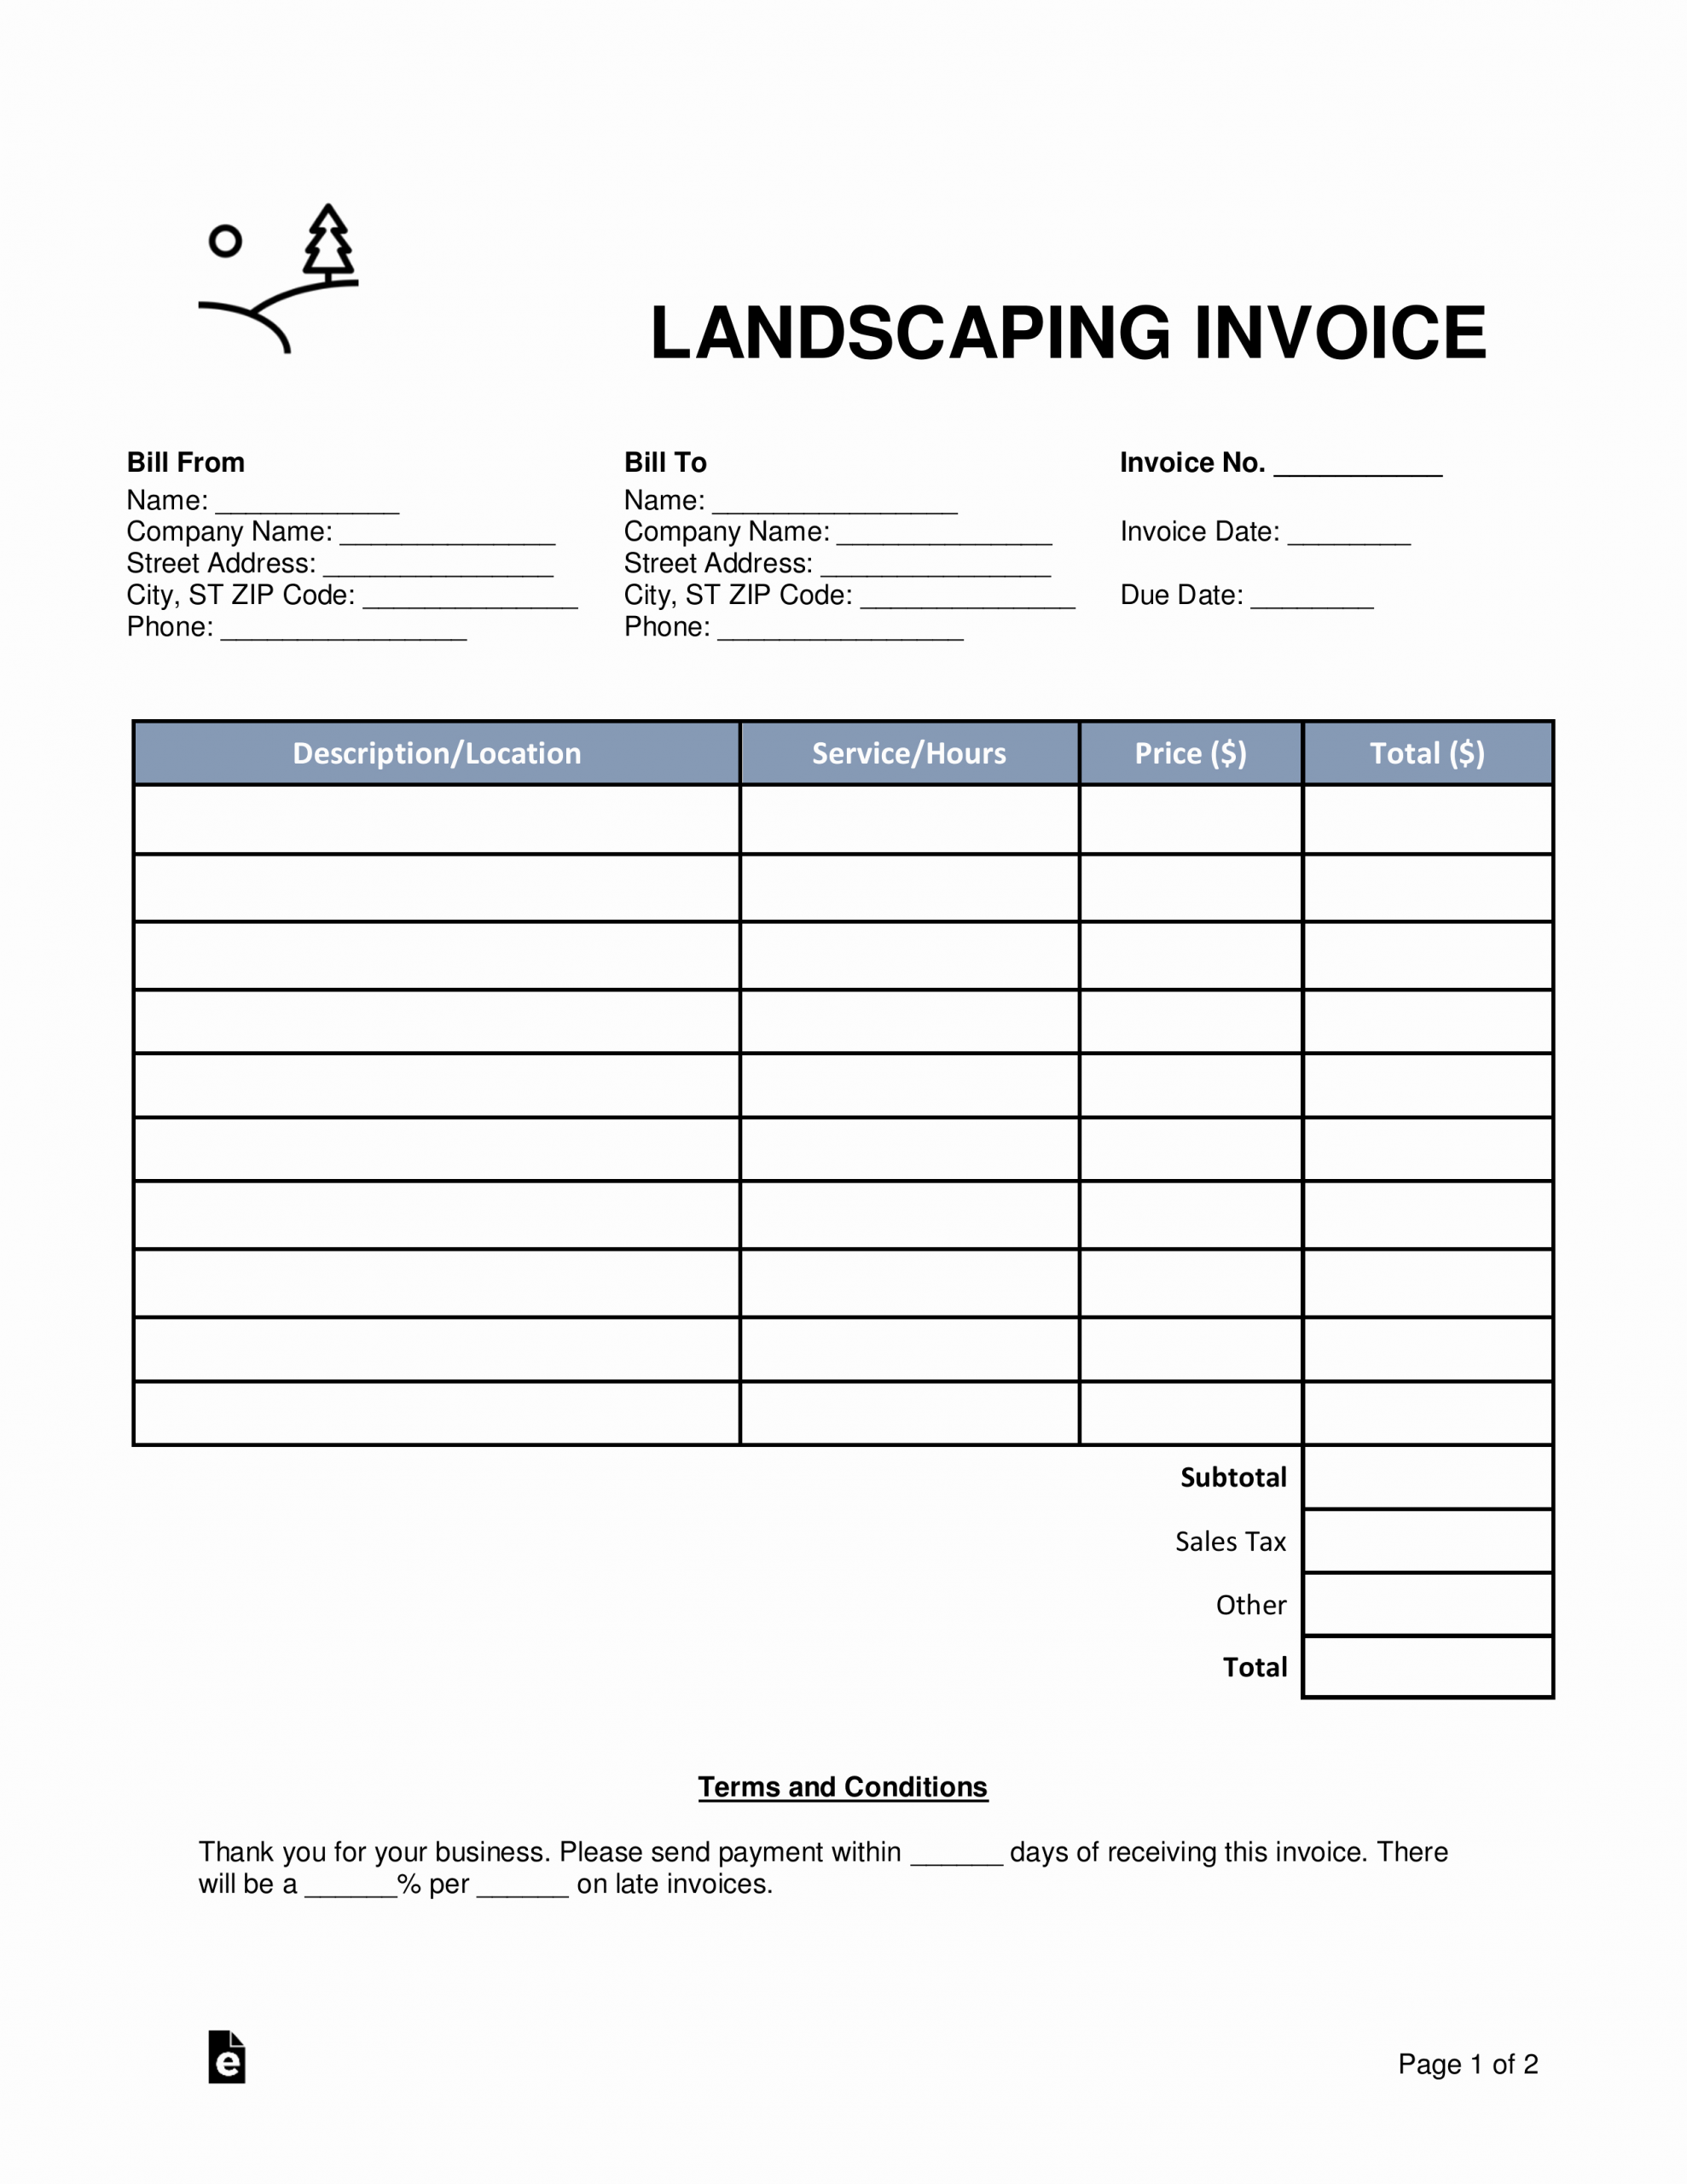 Lawn Care Invoice Template Pdf New Free Landscaping Invoice Template Word Pdf